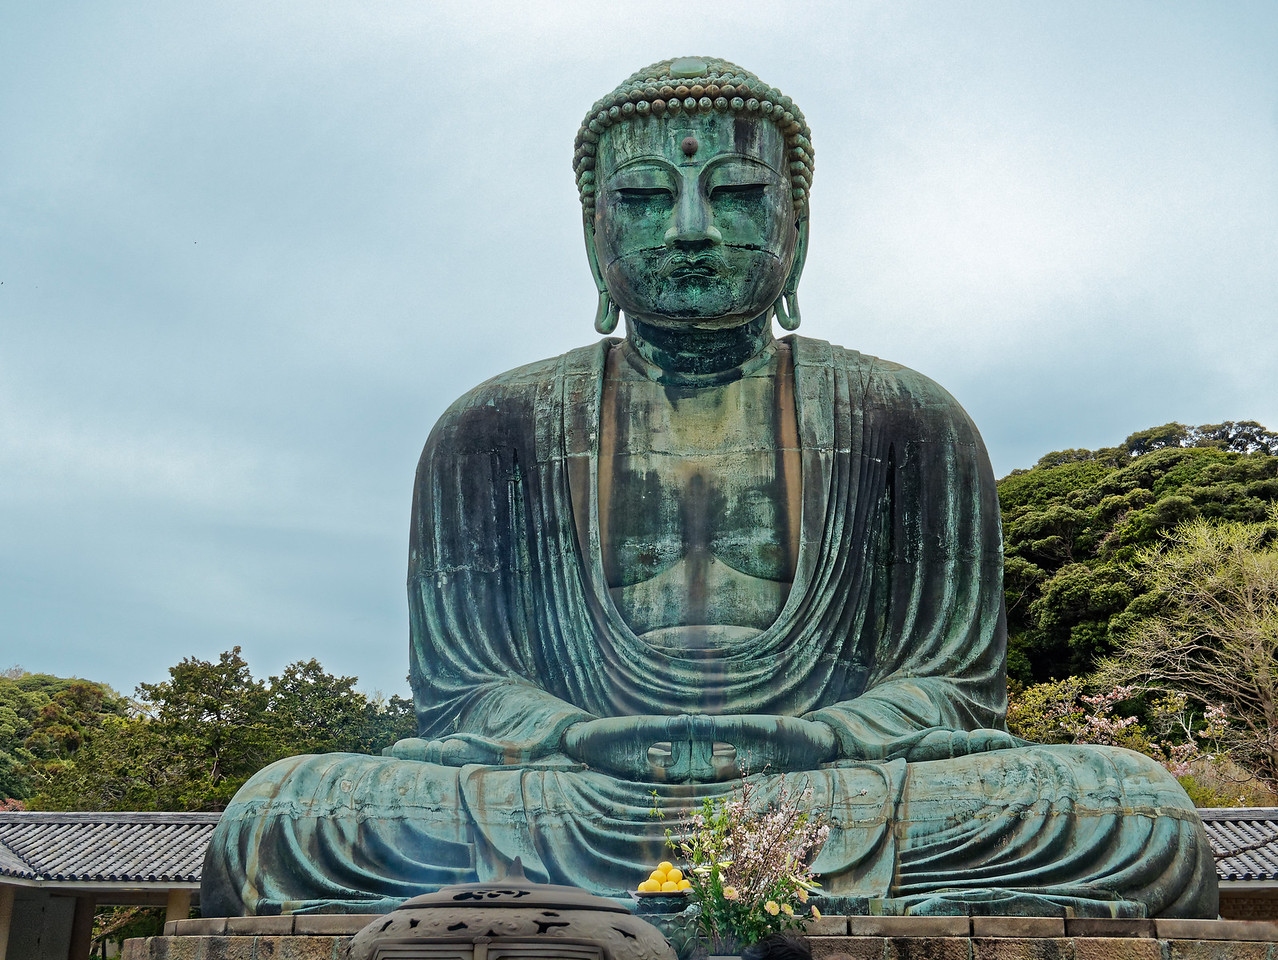 At one time the sculpture, over 40 feet in height, was gilded. The hall in which it was originally housed was destroyed in a storm, as was a replacement. A third hall was swept away by the tsunami of 20 September 1498. Since then, the Buddha has remained in the open.